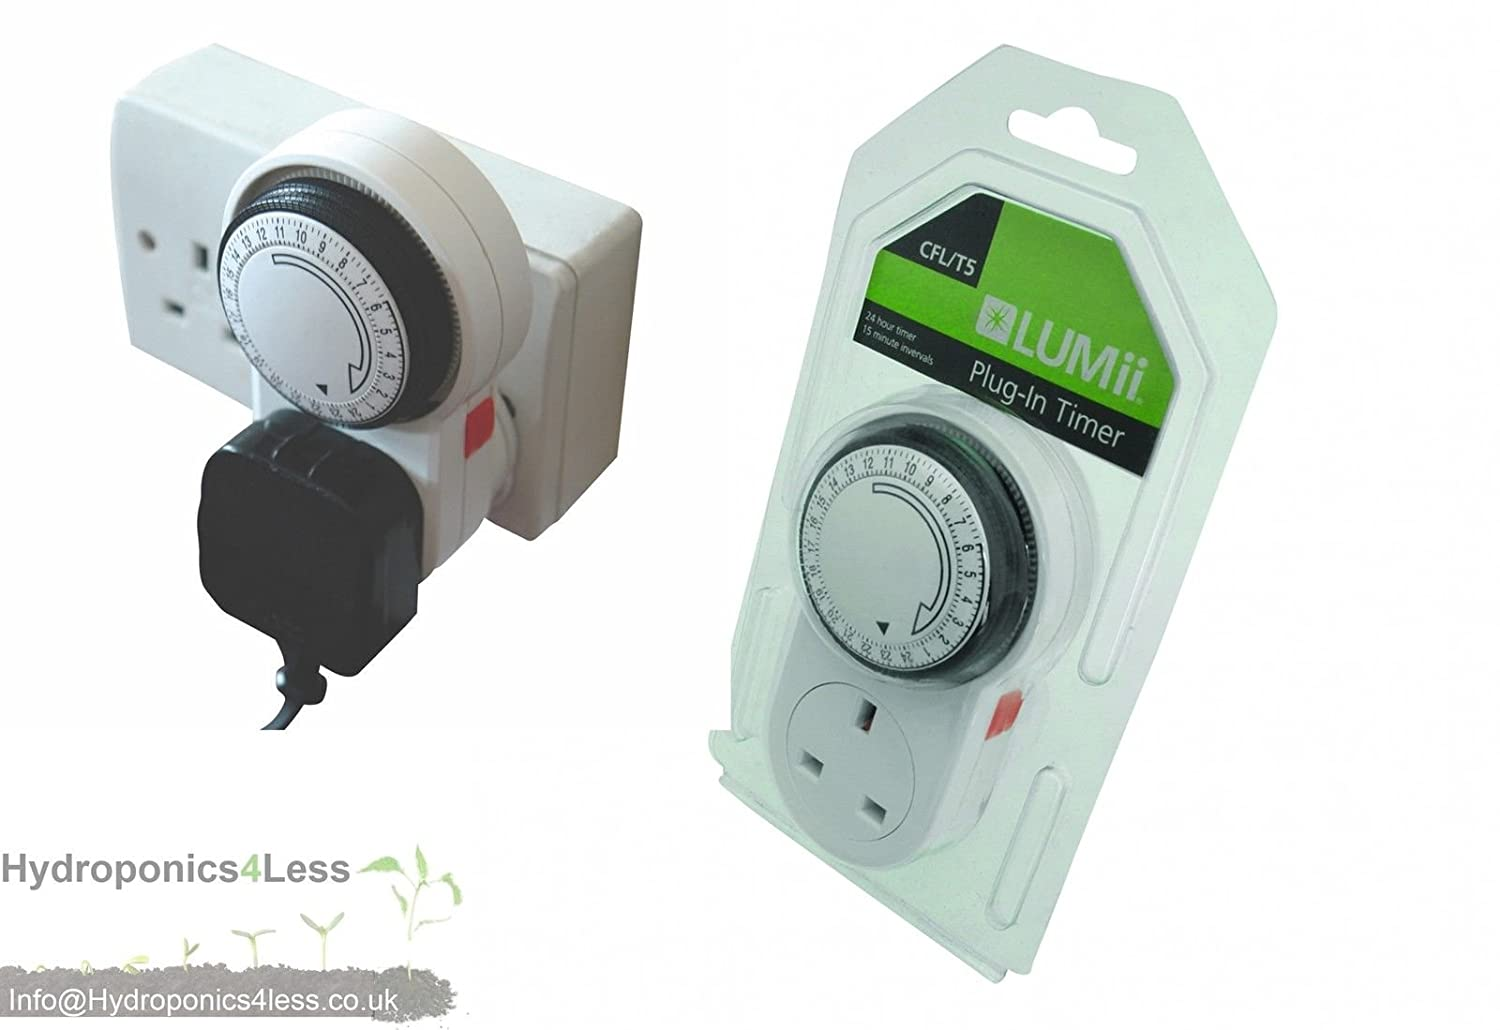 LUMii 24 Hour Plug in Timer for Grow Lights Ballasts HPS MH Light Kits & Fans hydroponics4less